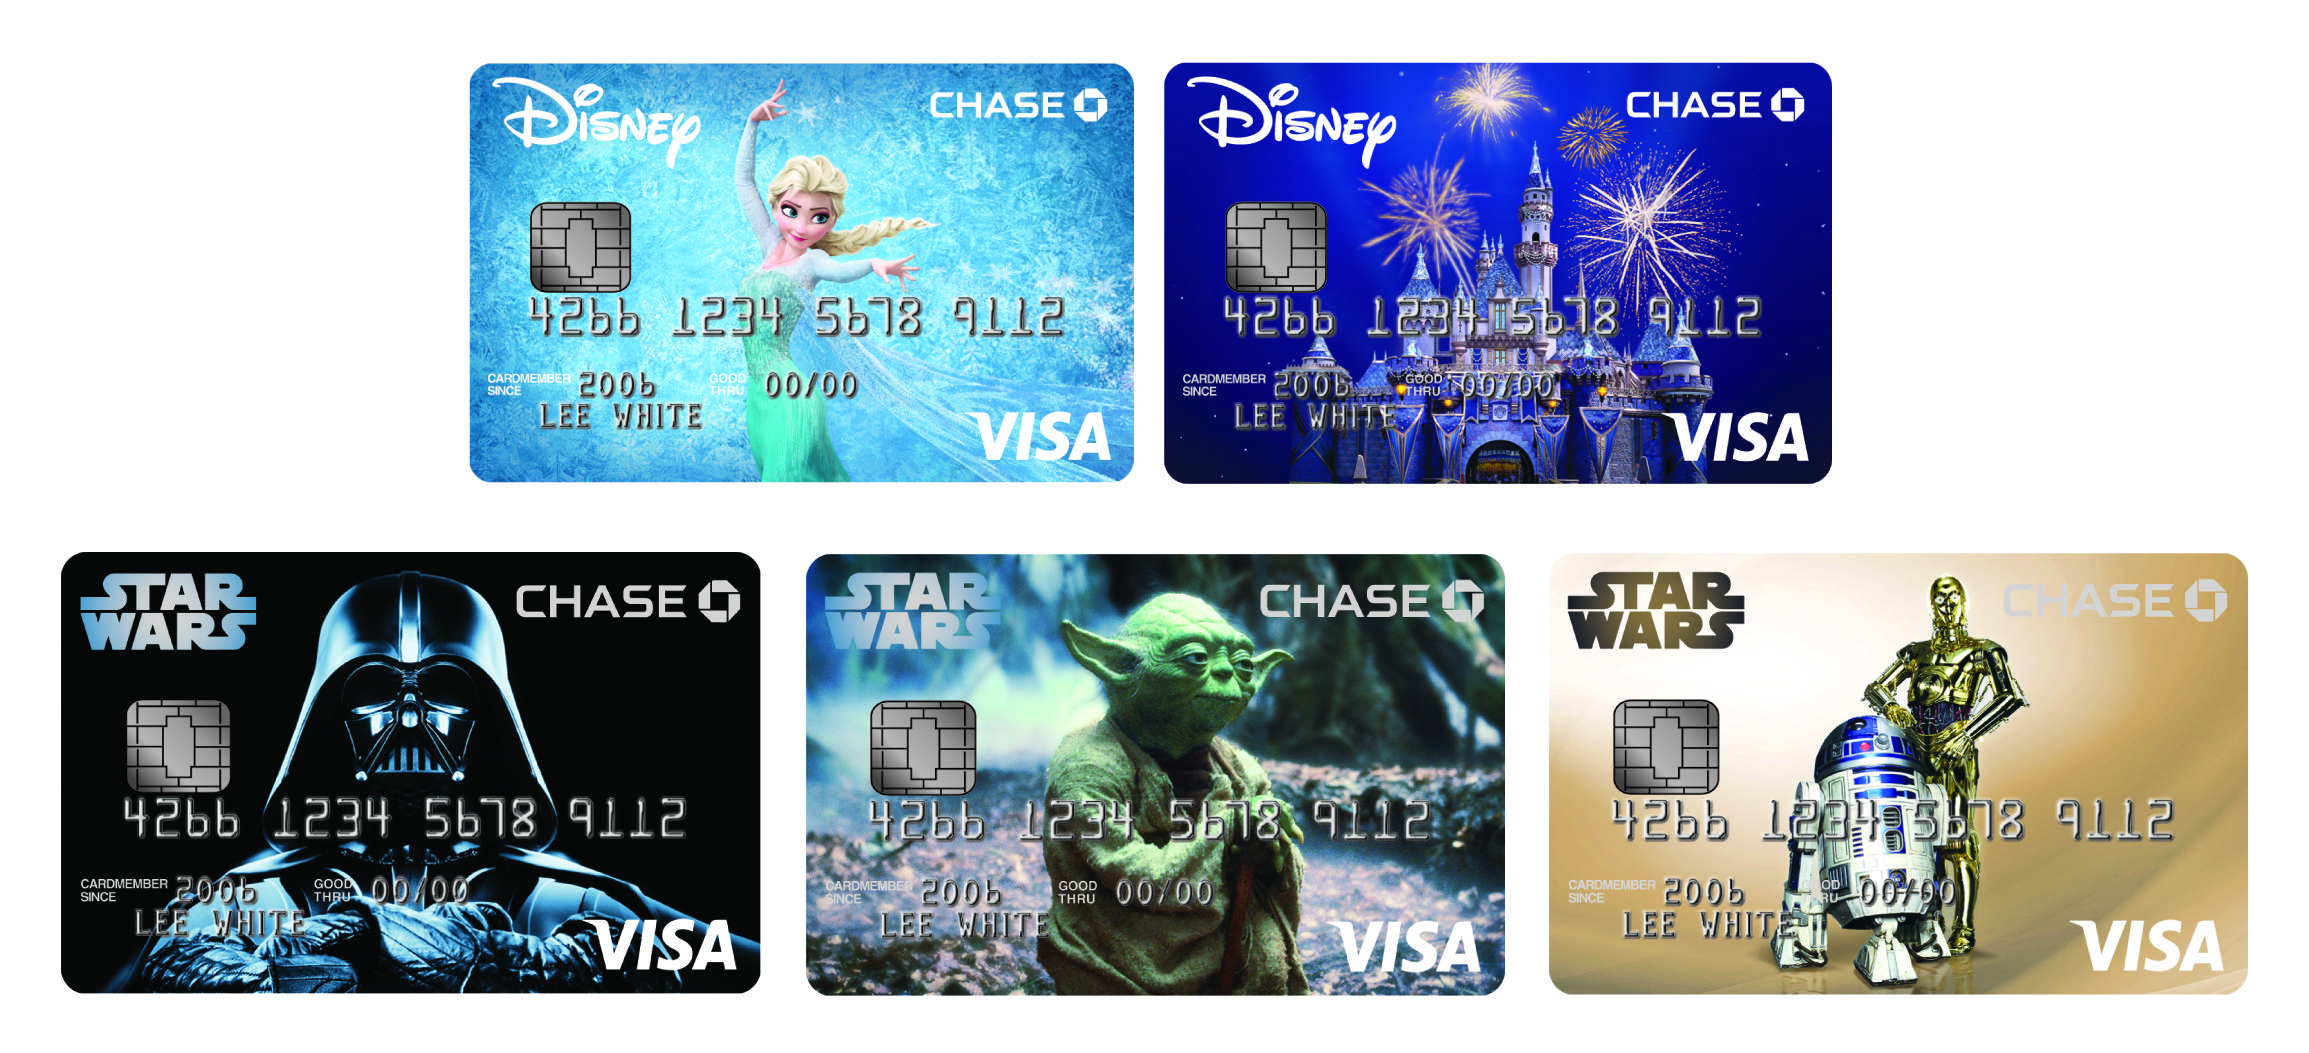 New Disney Visa Credit Card Designs - Disney Pins Blog